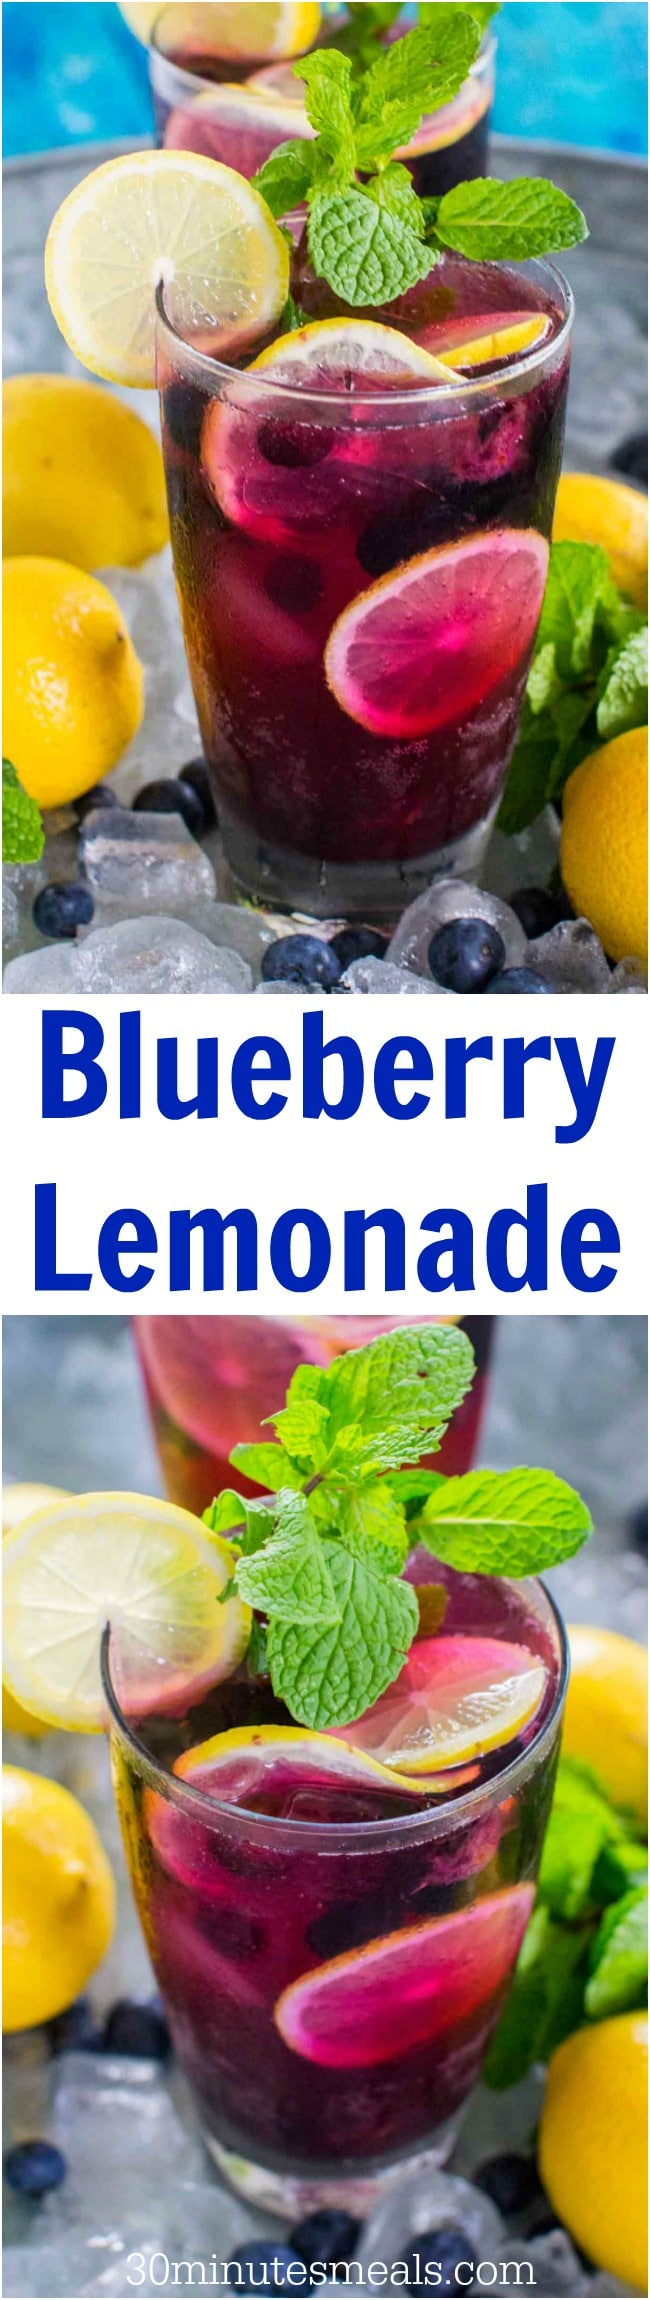 Sweet and refreshing Blueberry Lemonade tastes delicious and refreshing year round. Made easy with sweet blueberry simple syrup and fresh lemon juice.